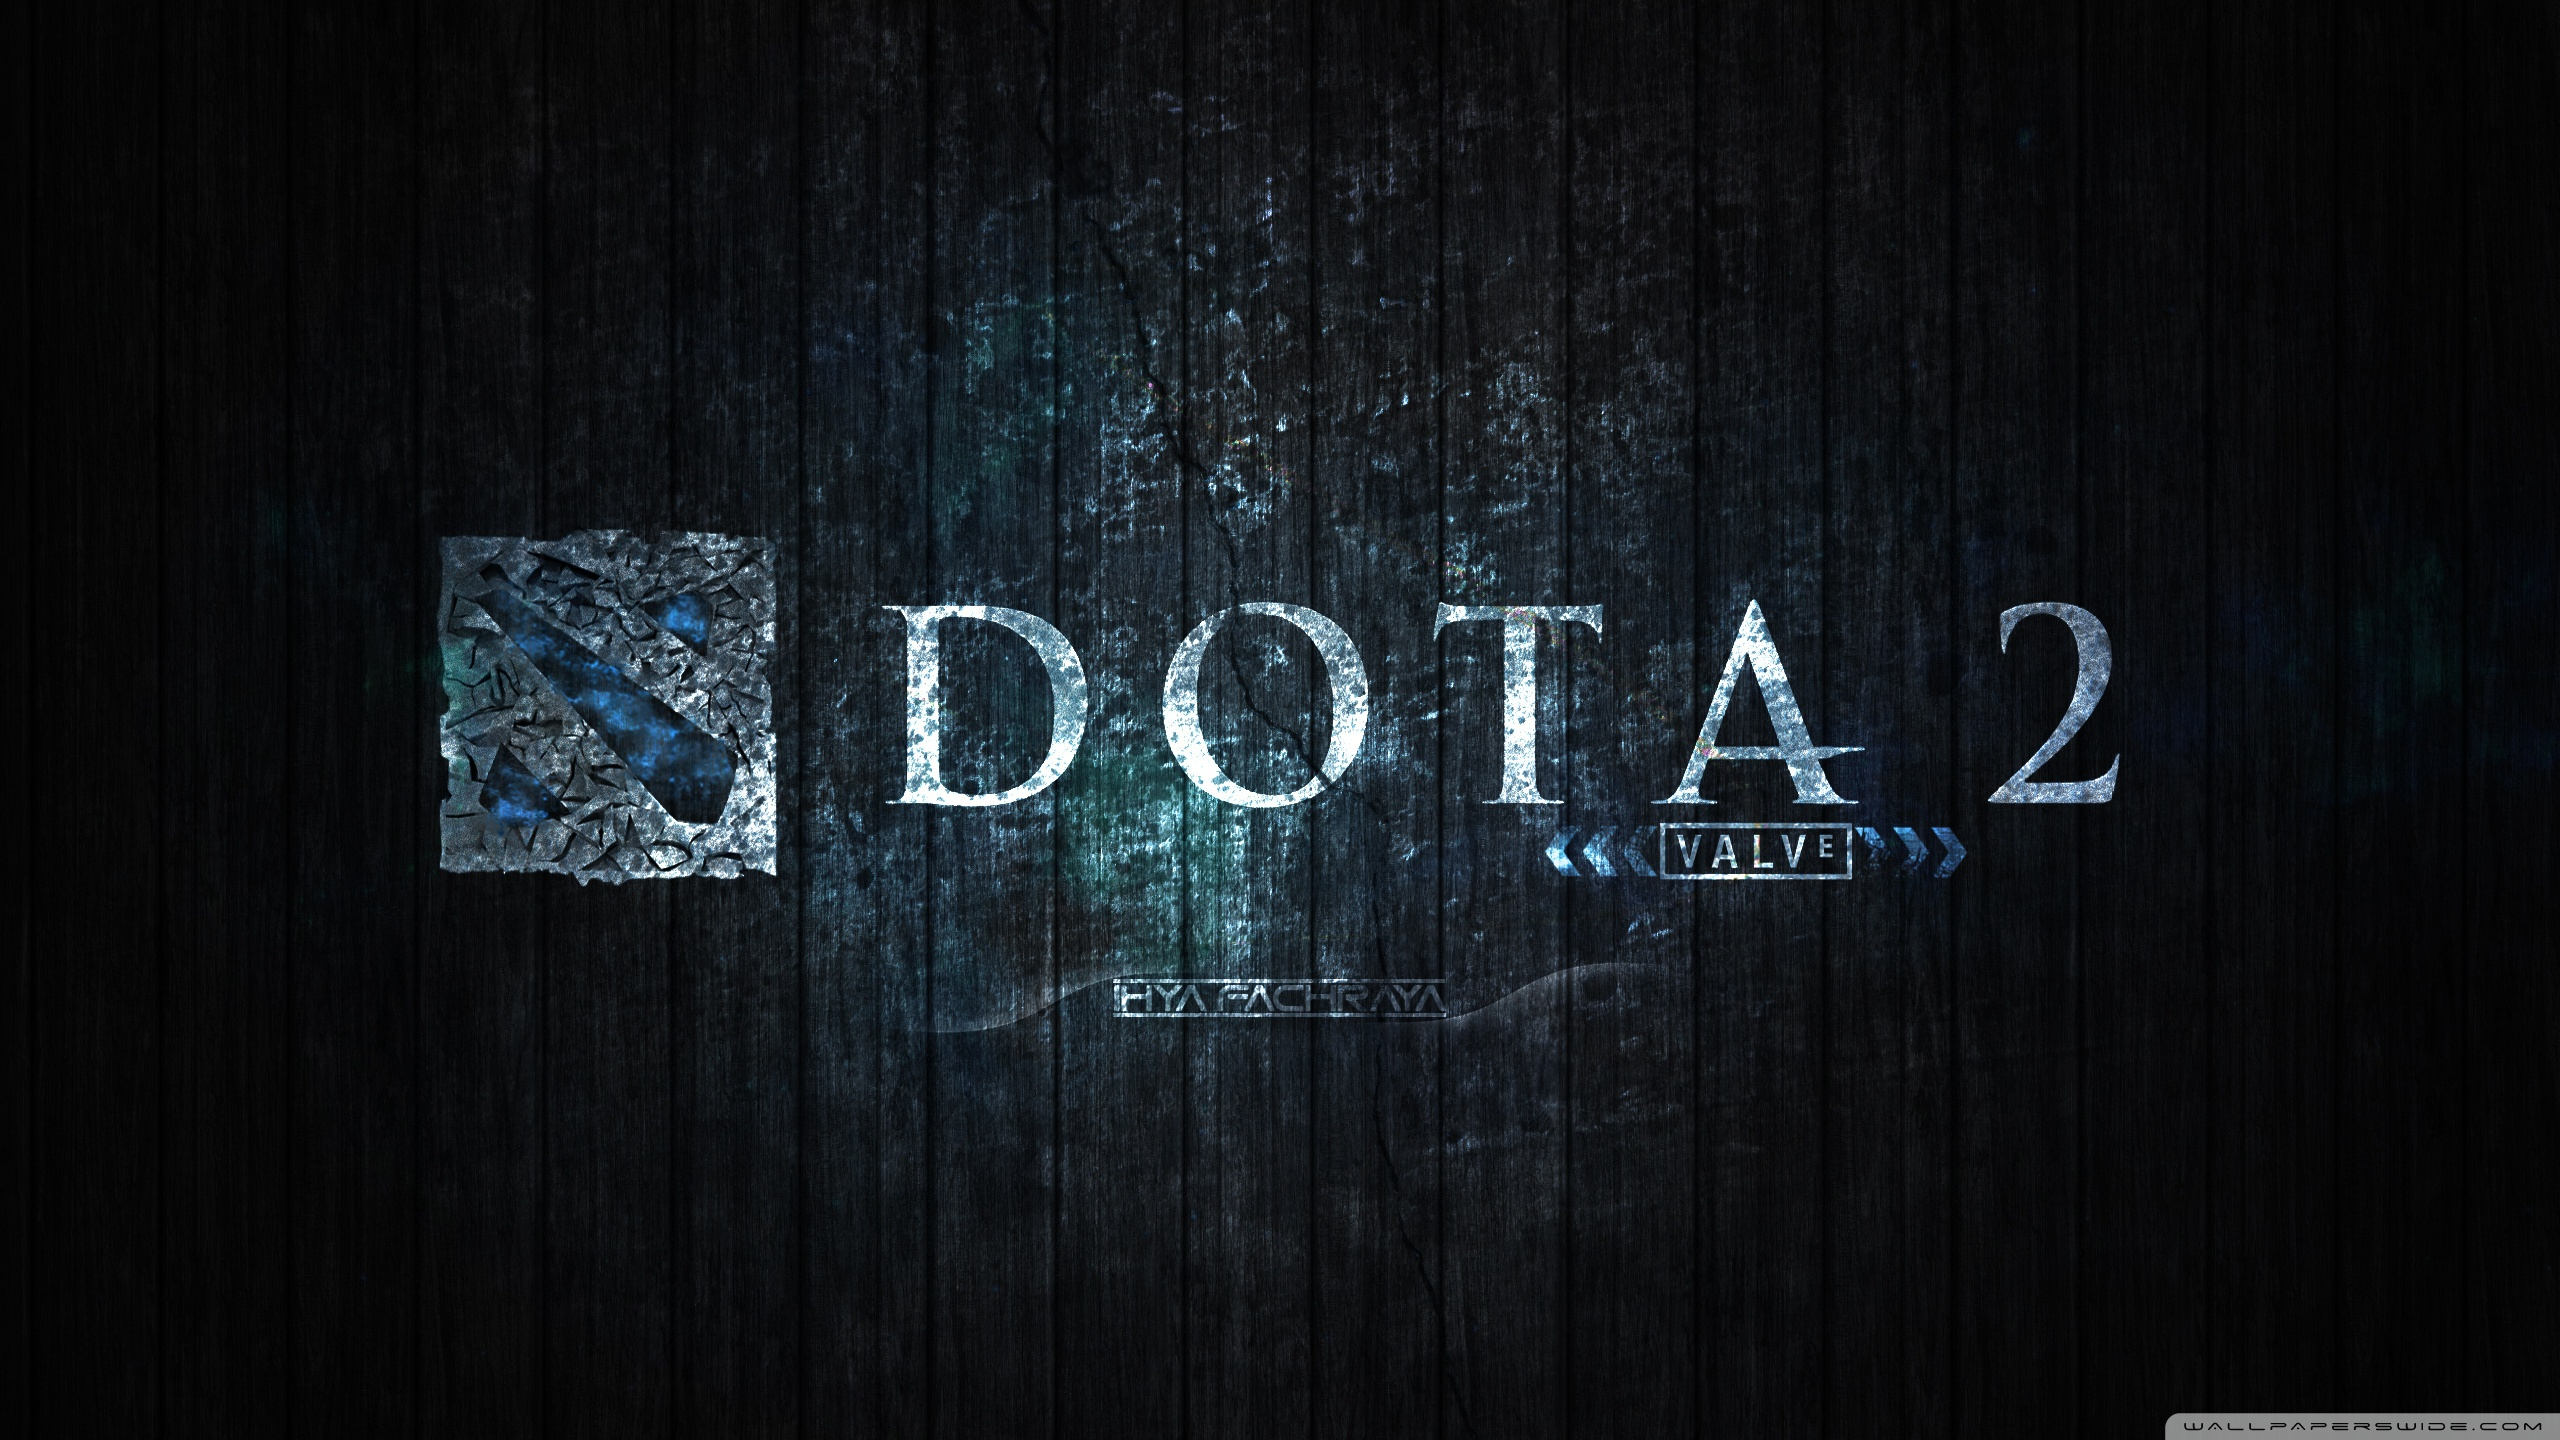 Dota 2 Wallpaper High Resolution